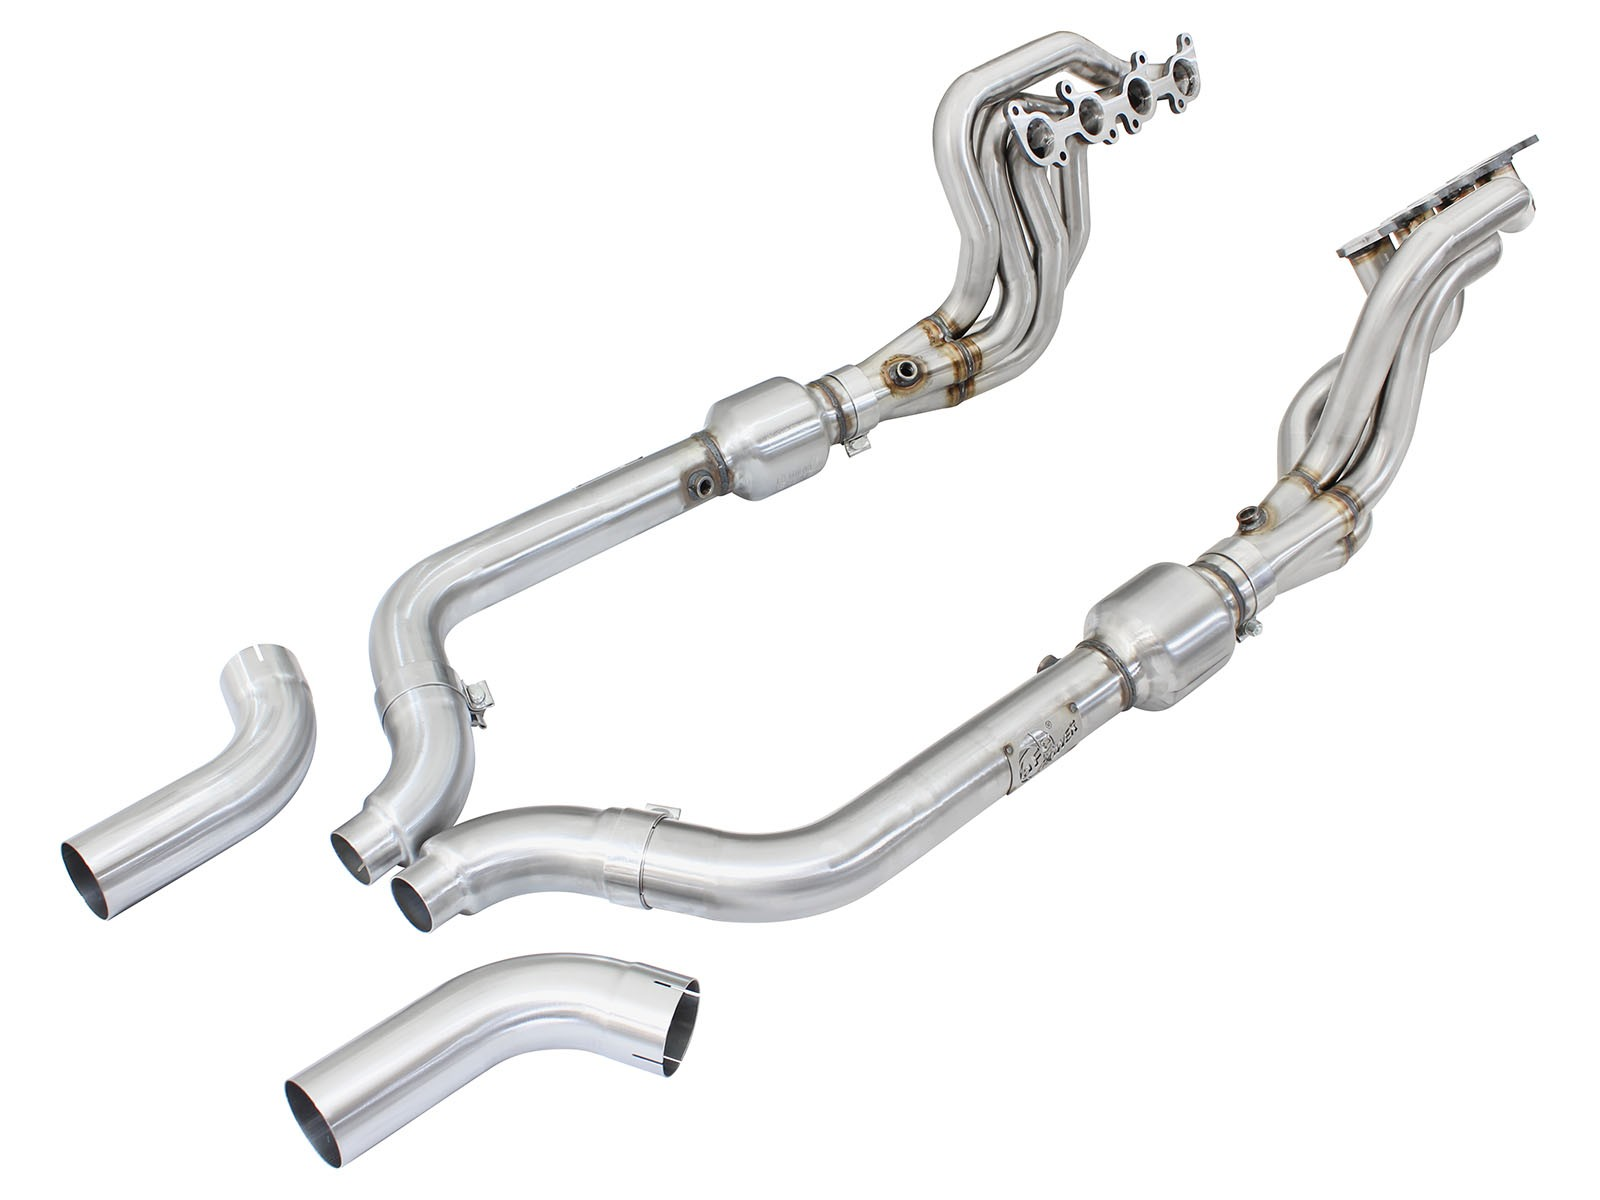 Mustang Gt 5 0l Afe Twisted Steel Long Tube